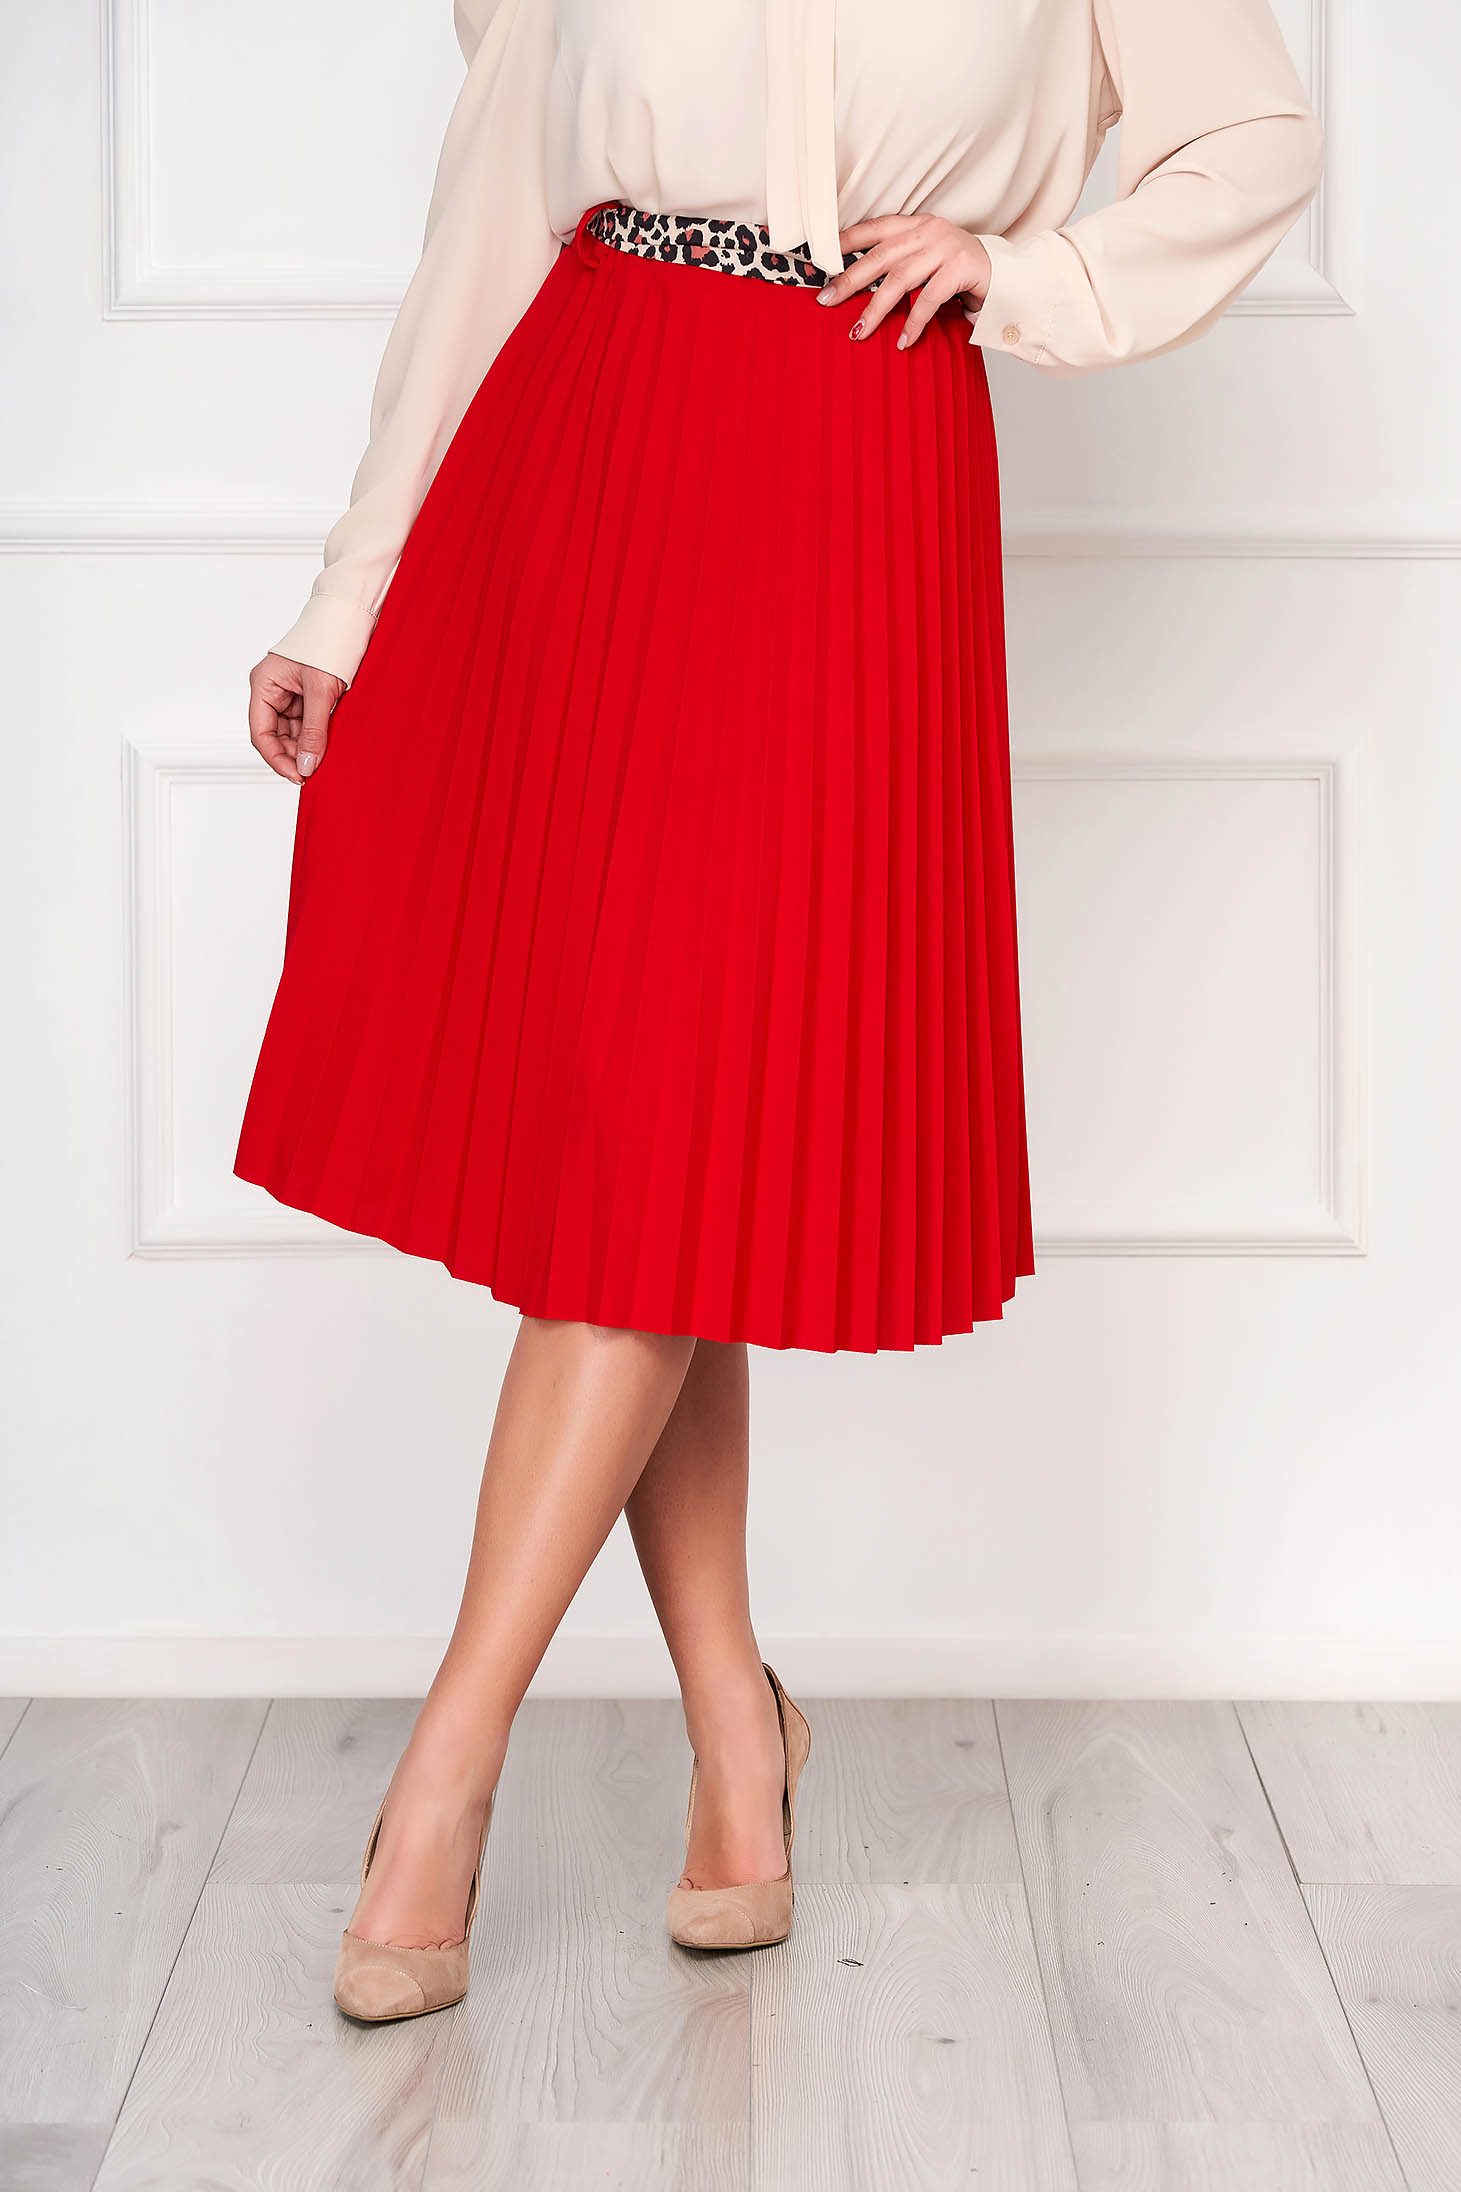 Red casual midi cloche skirt accessorized with belt pleats of material